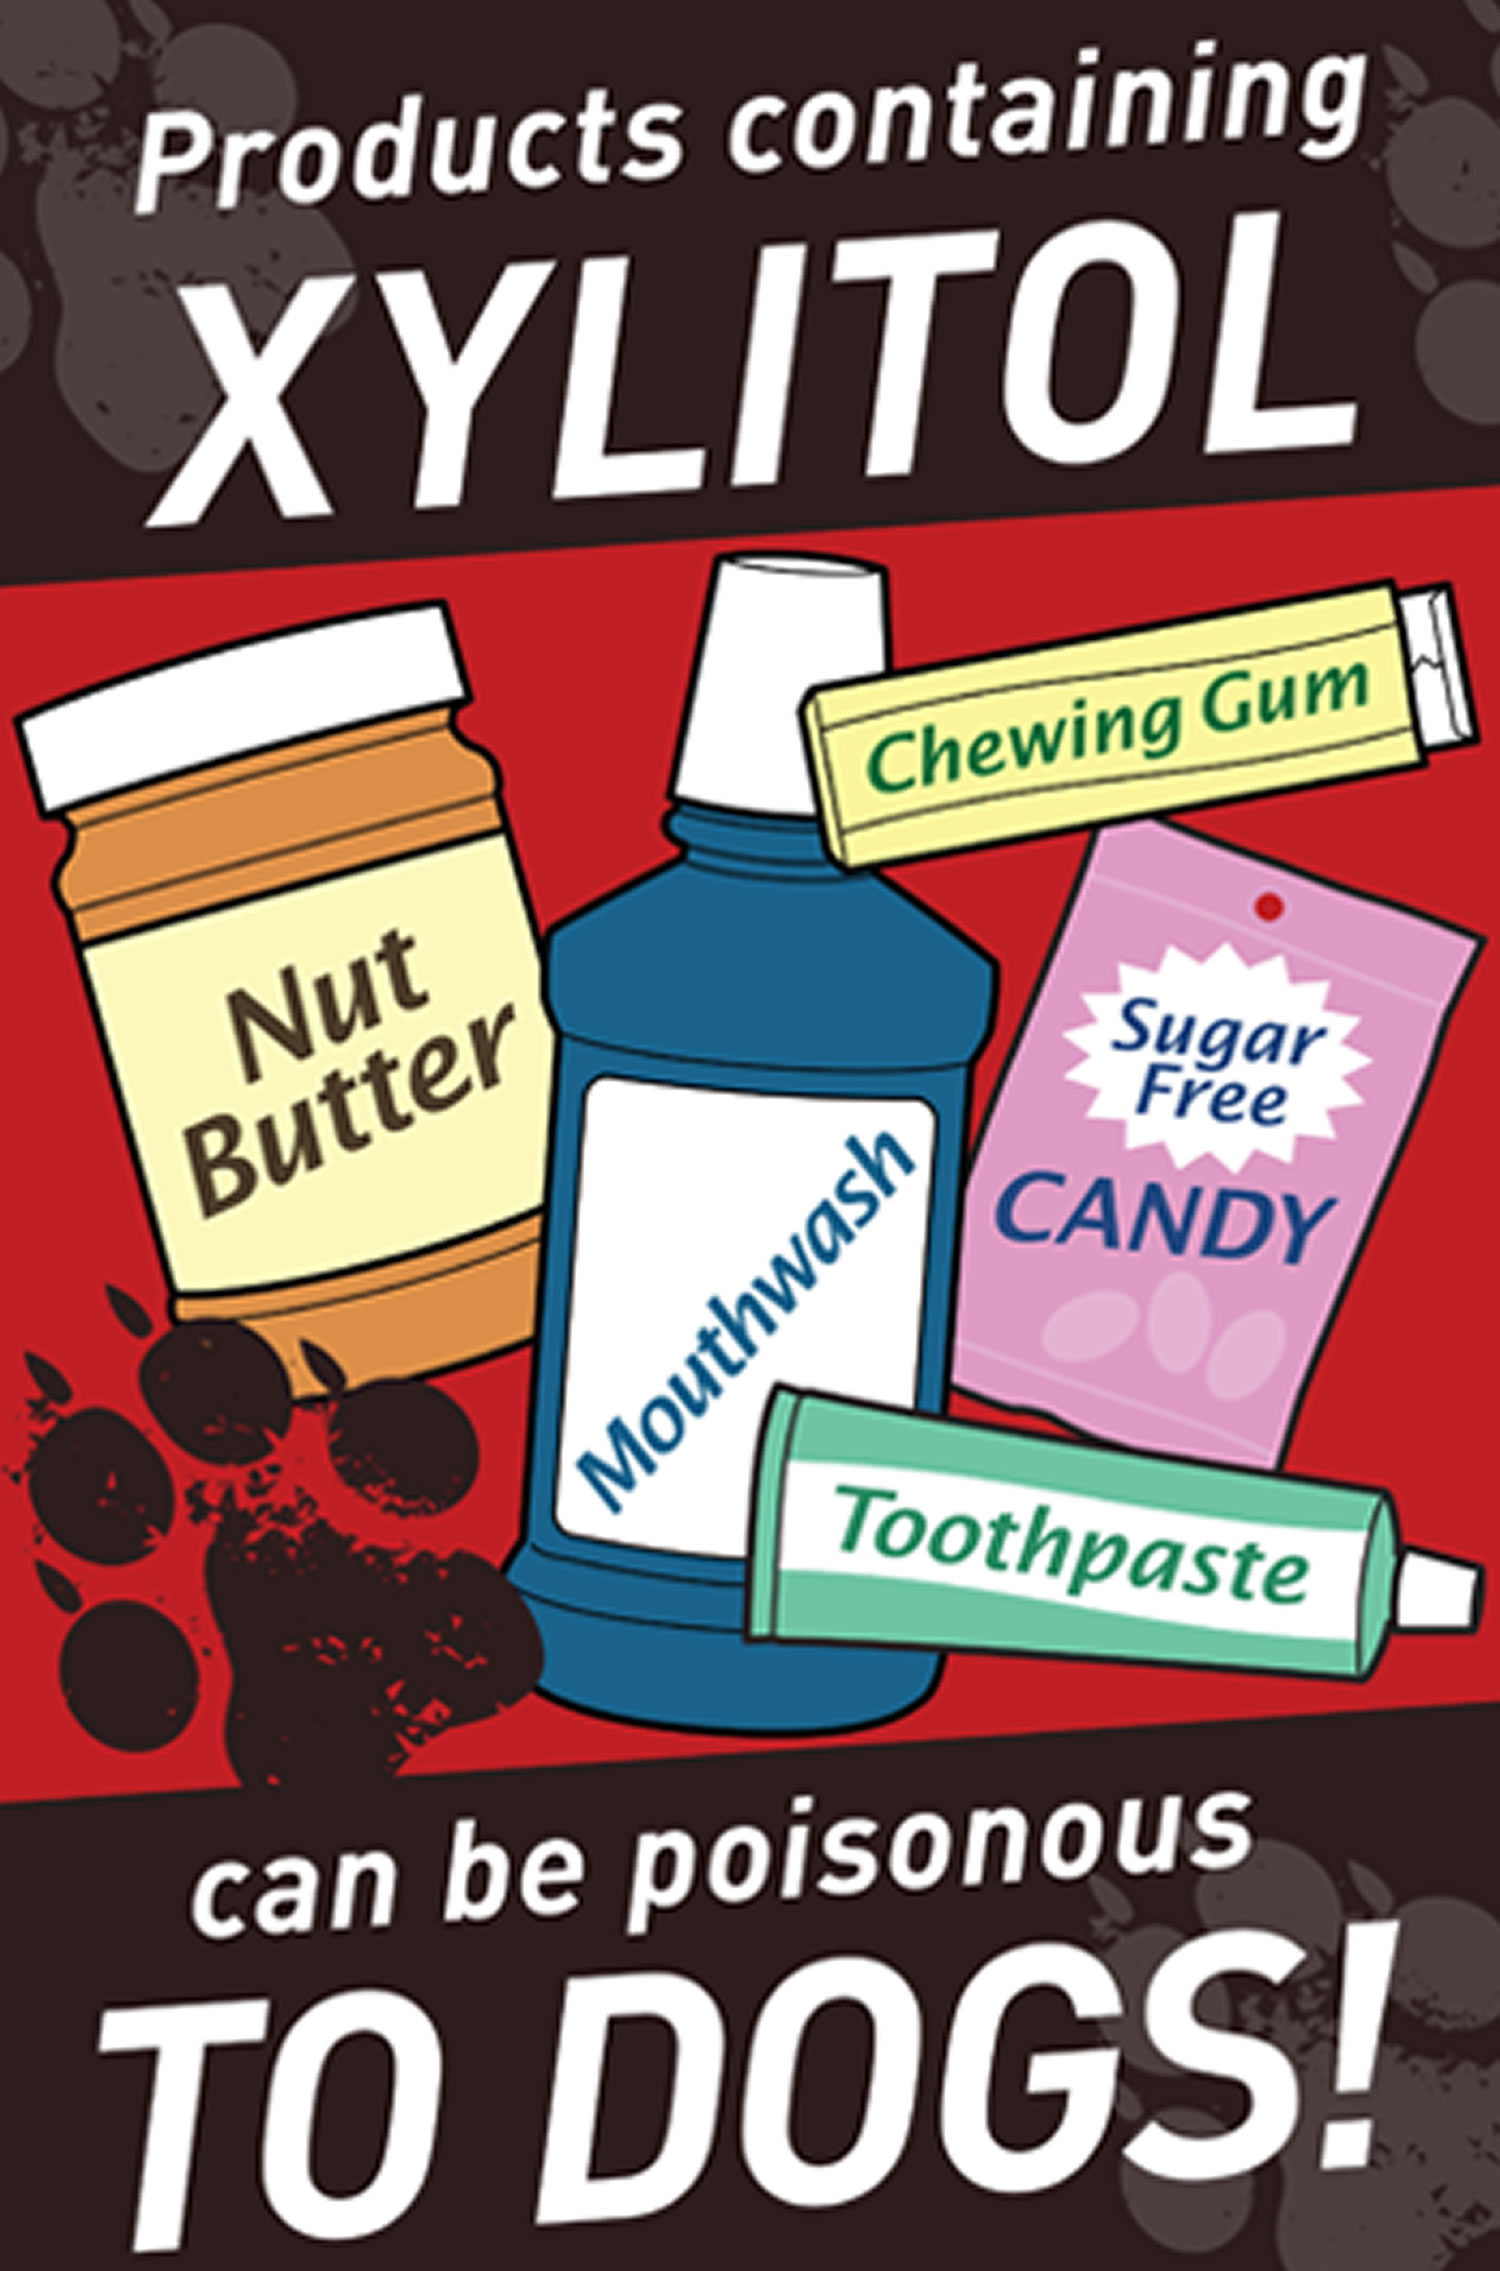 xylitol is poisonous to dogs